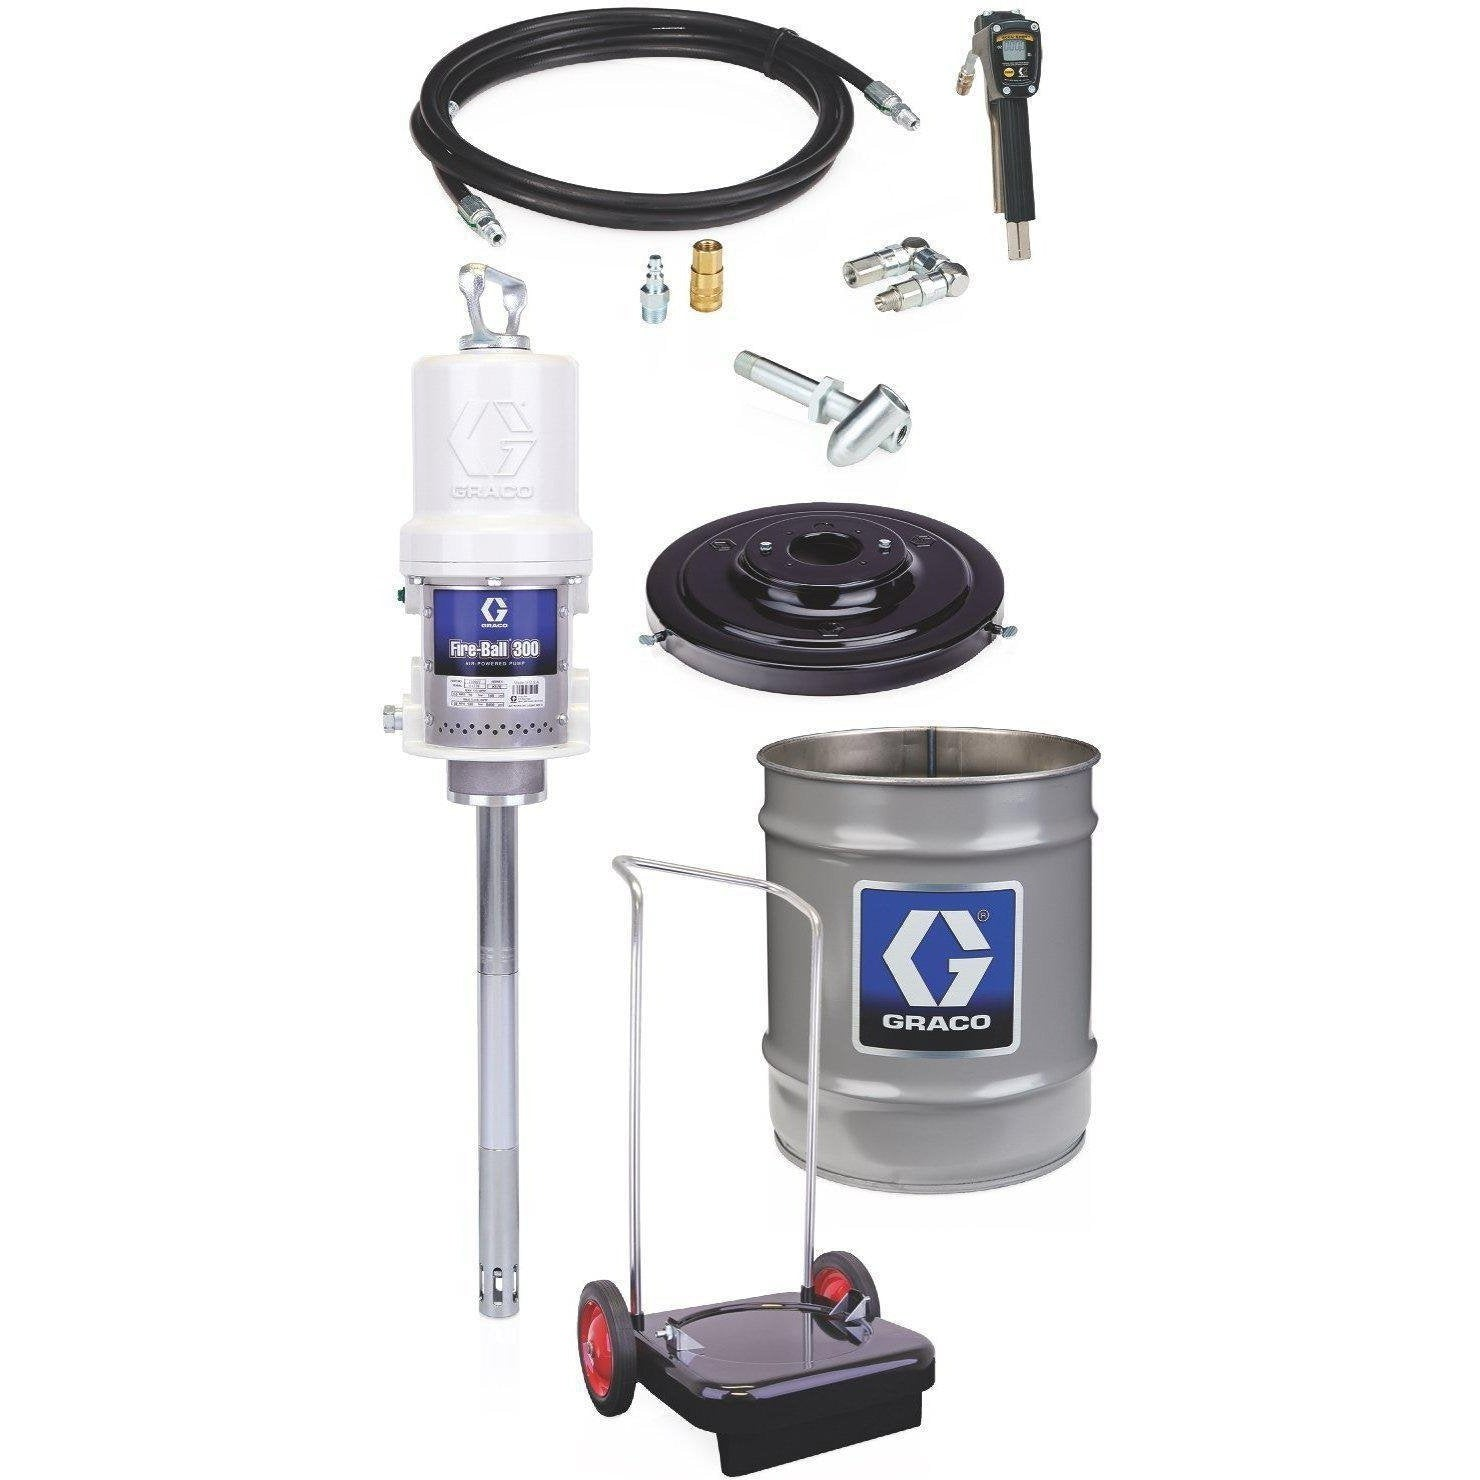 Graco 245695 Fire-Ballâ® 300 Series 50:1 35 To 50 Lb. Grease Pump - Portable Pail Dispenser Package - Fireball Equipment Ltd.